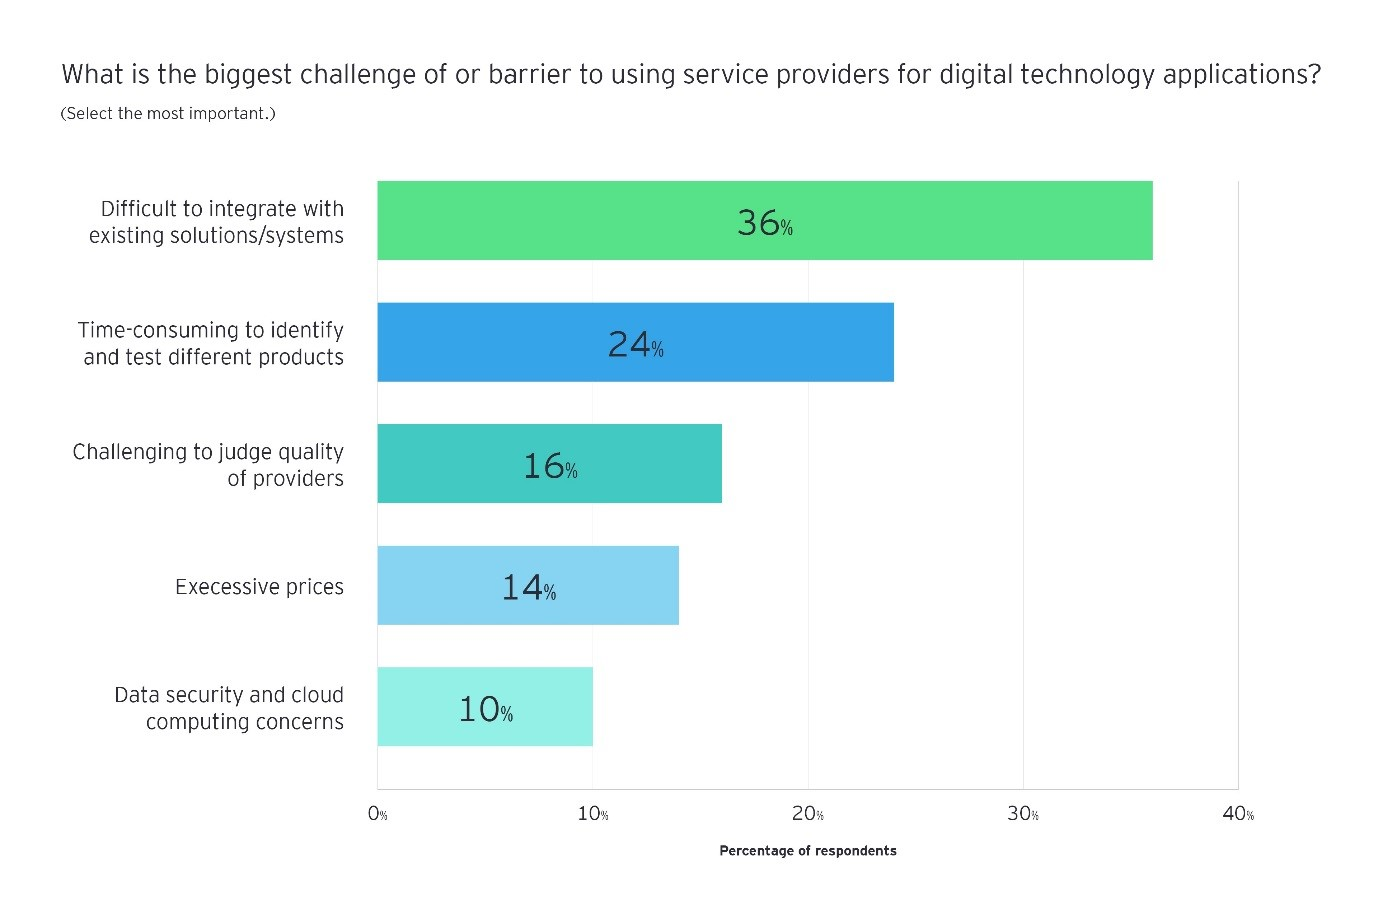 what is the biggest challenge of or barrier to using service providers for digital technology applications